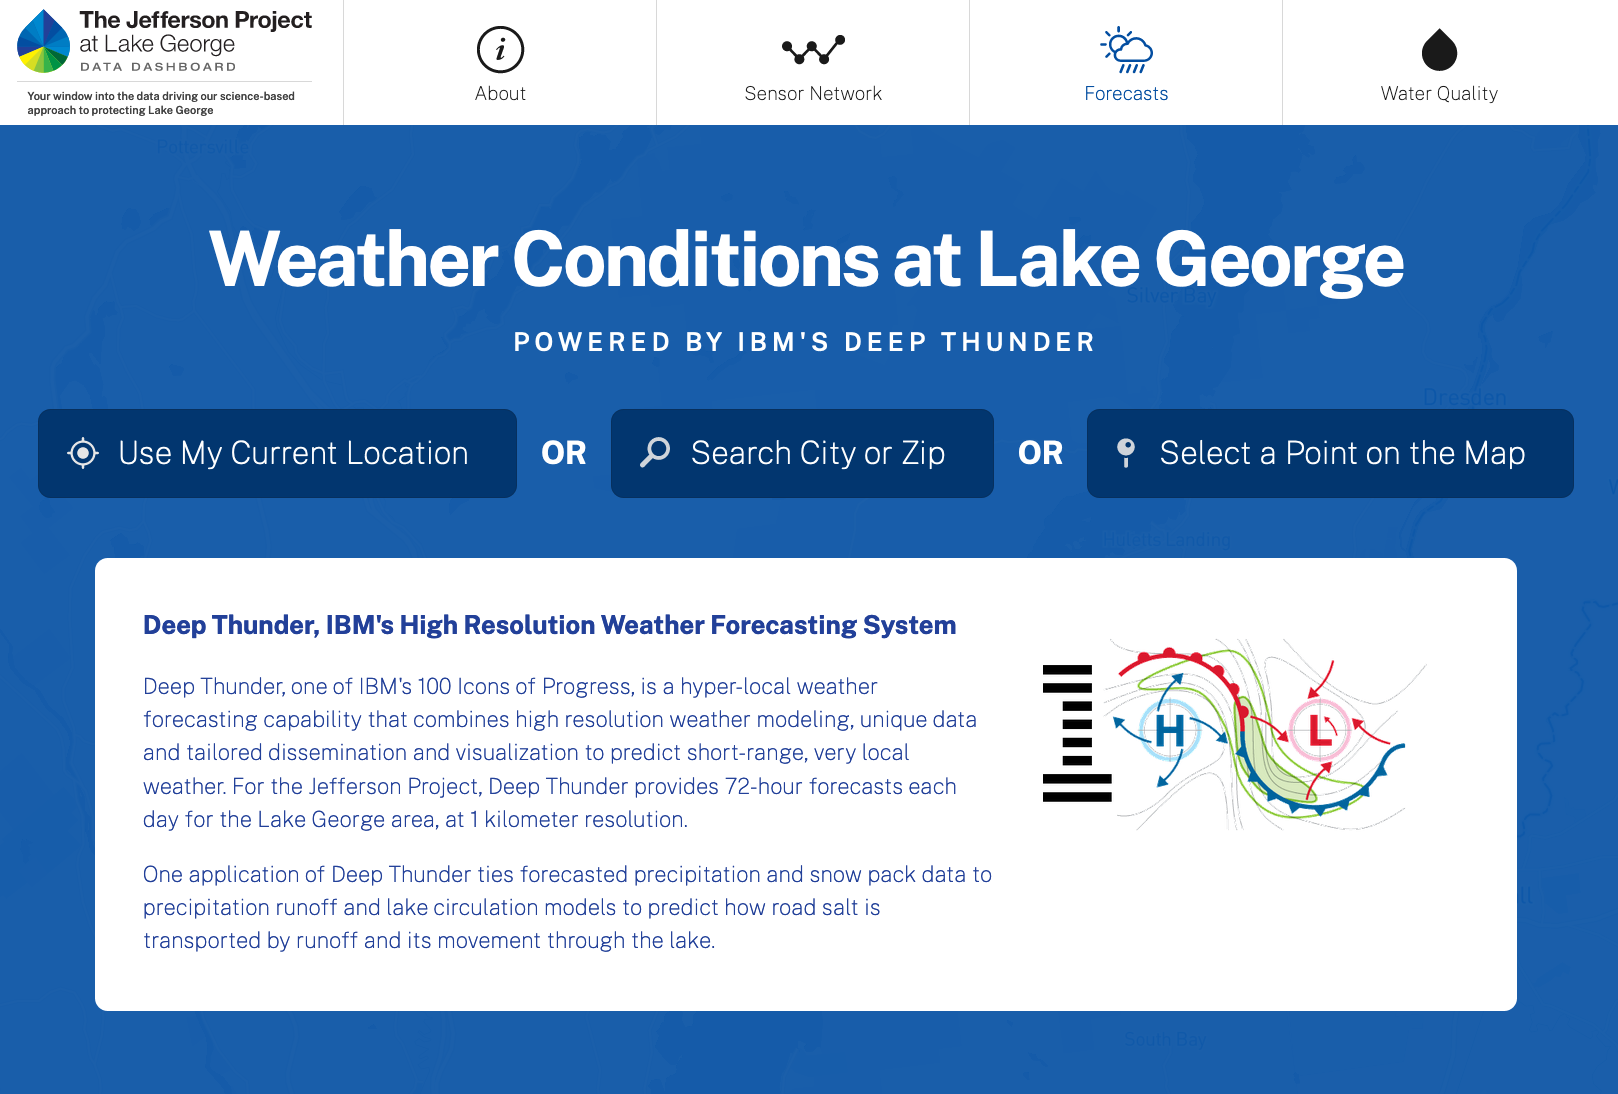 Jefferson Project Launches New Digital Dashboard with Real-Time Weather and Water Quality Data